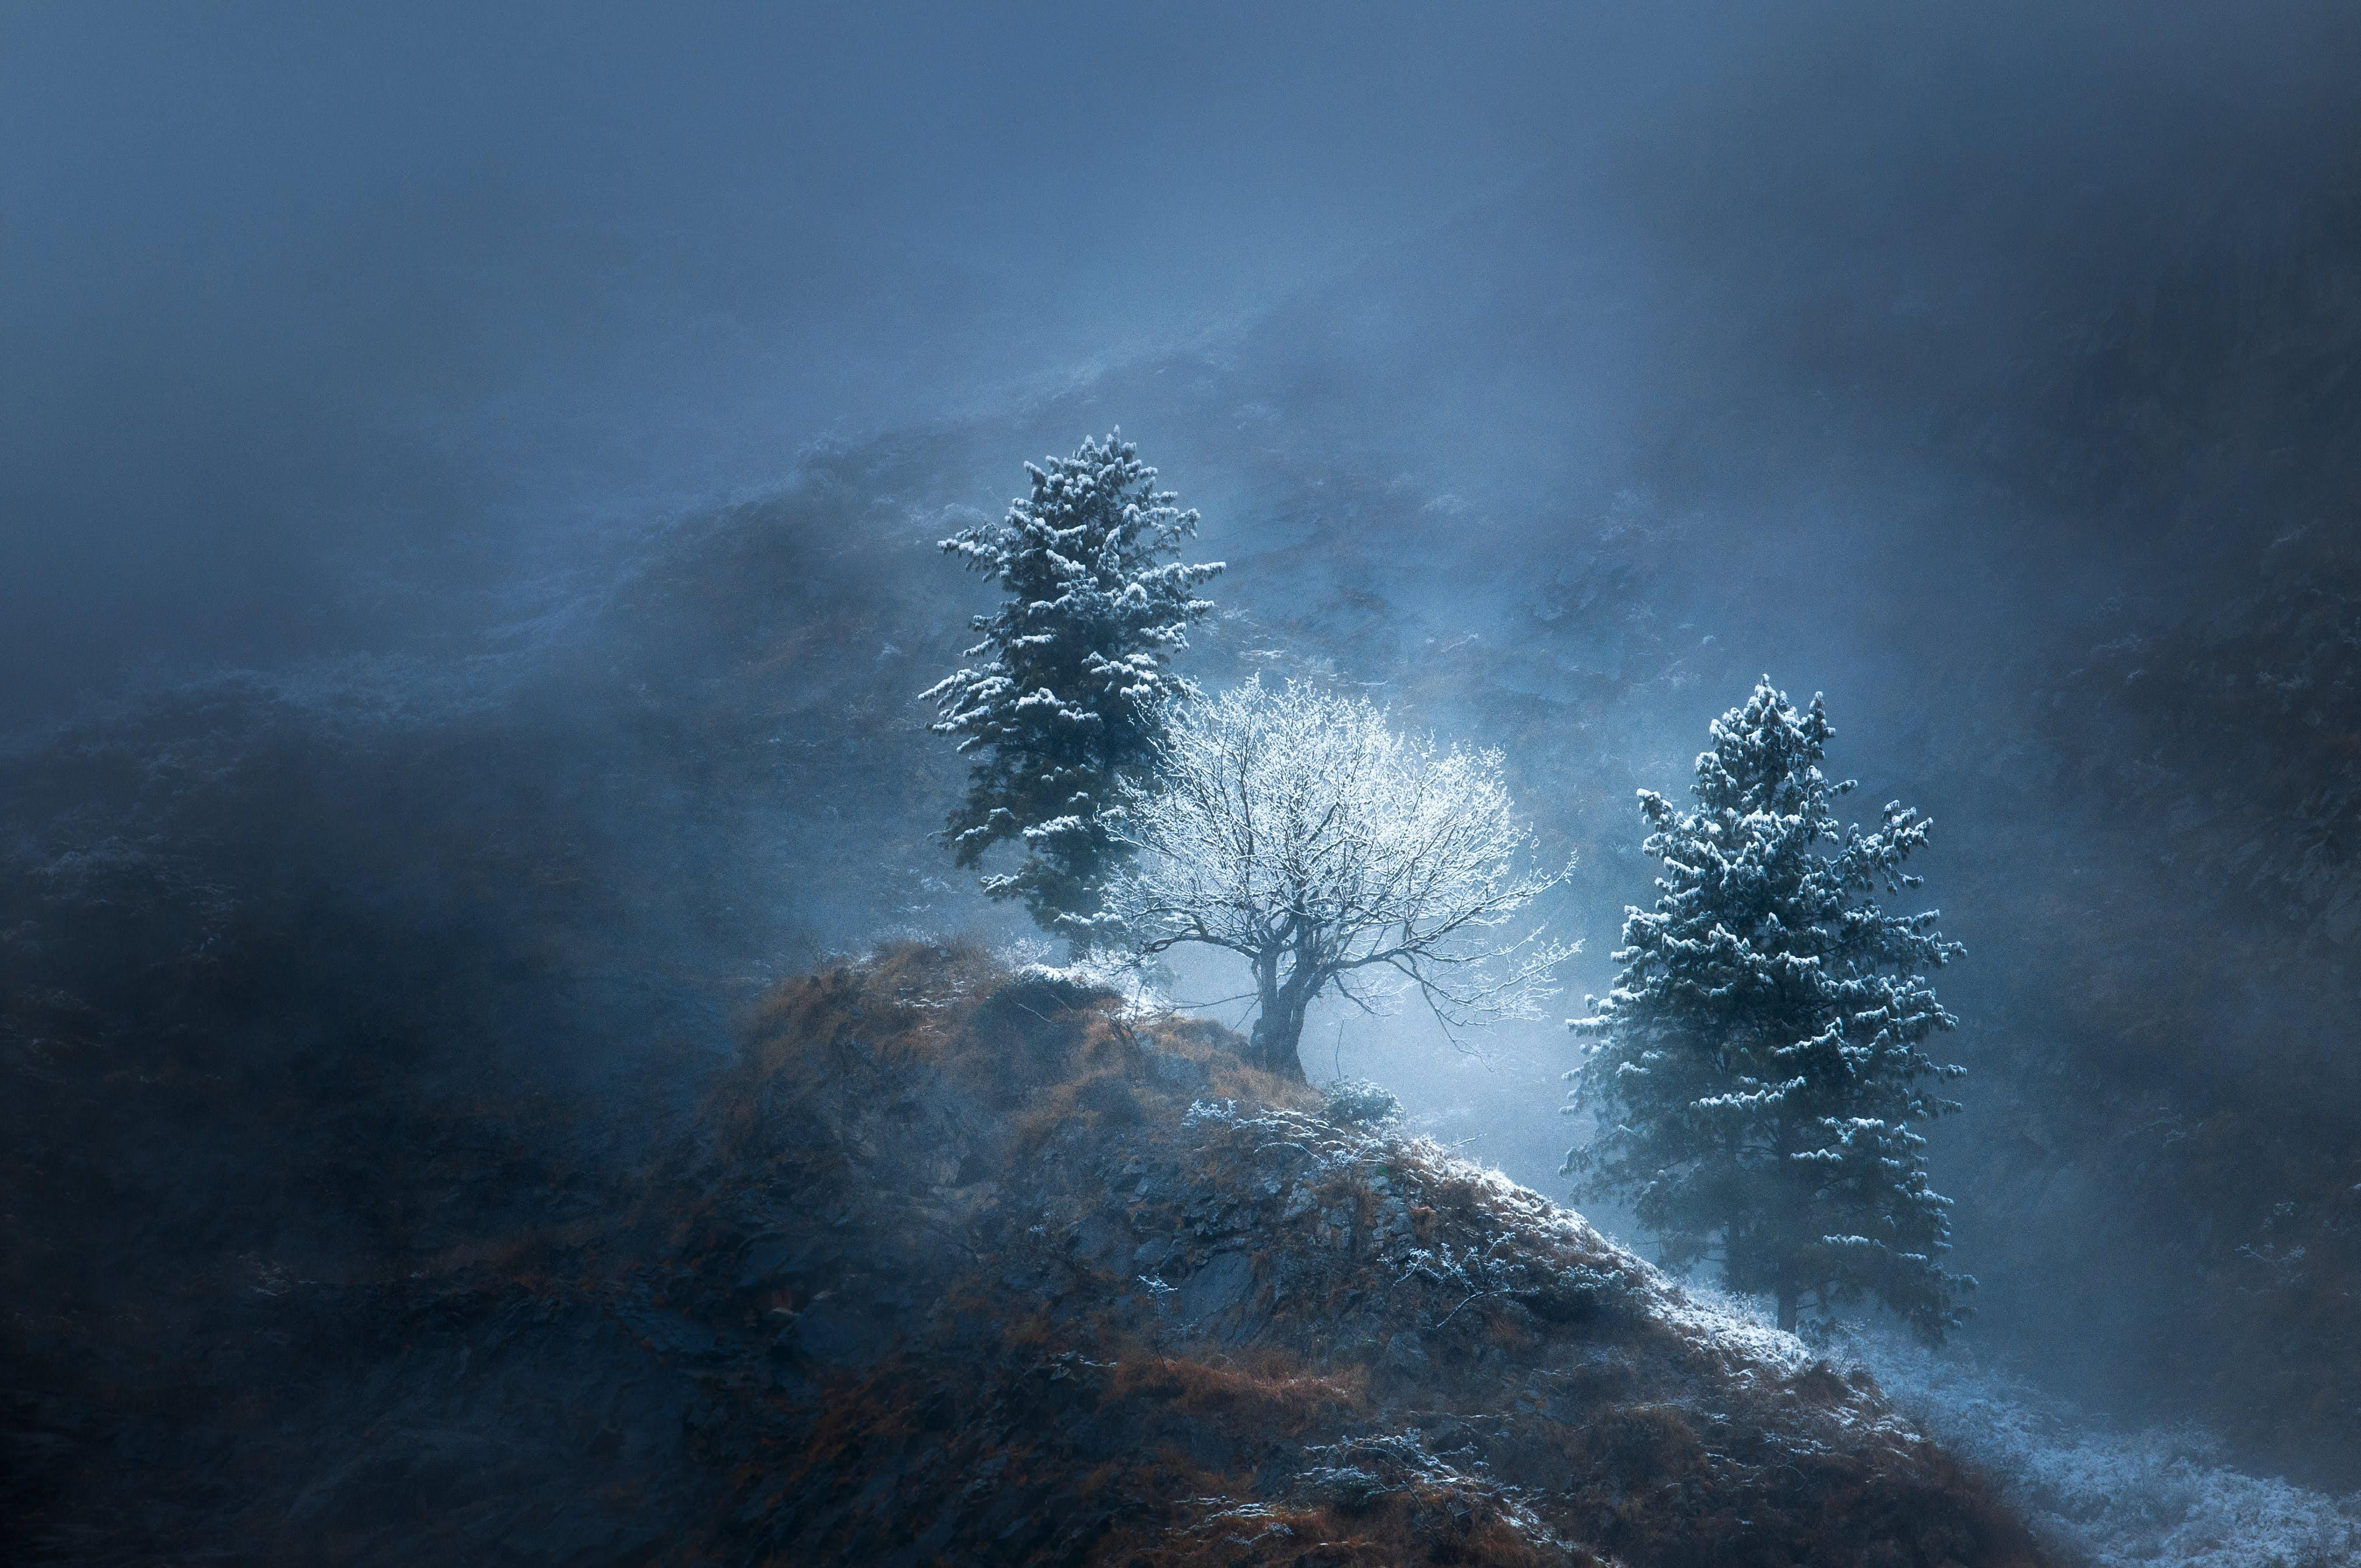 Shot In Chamba Valley Just When It Started To Snow Overcast Weather Gave Amazing Lighting For This Shot Oc 4049x In 2020 Landscape Landscape Photography Earthporn